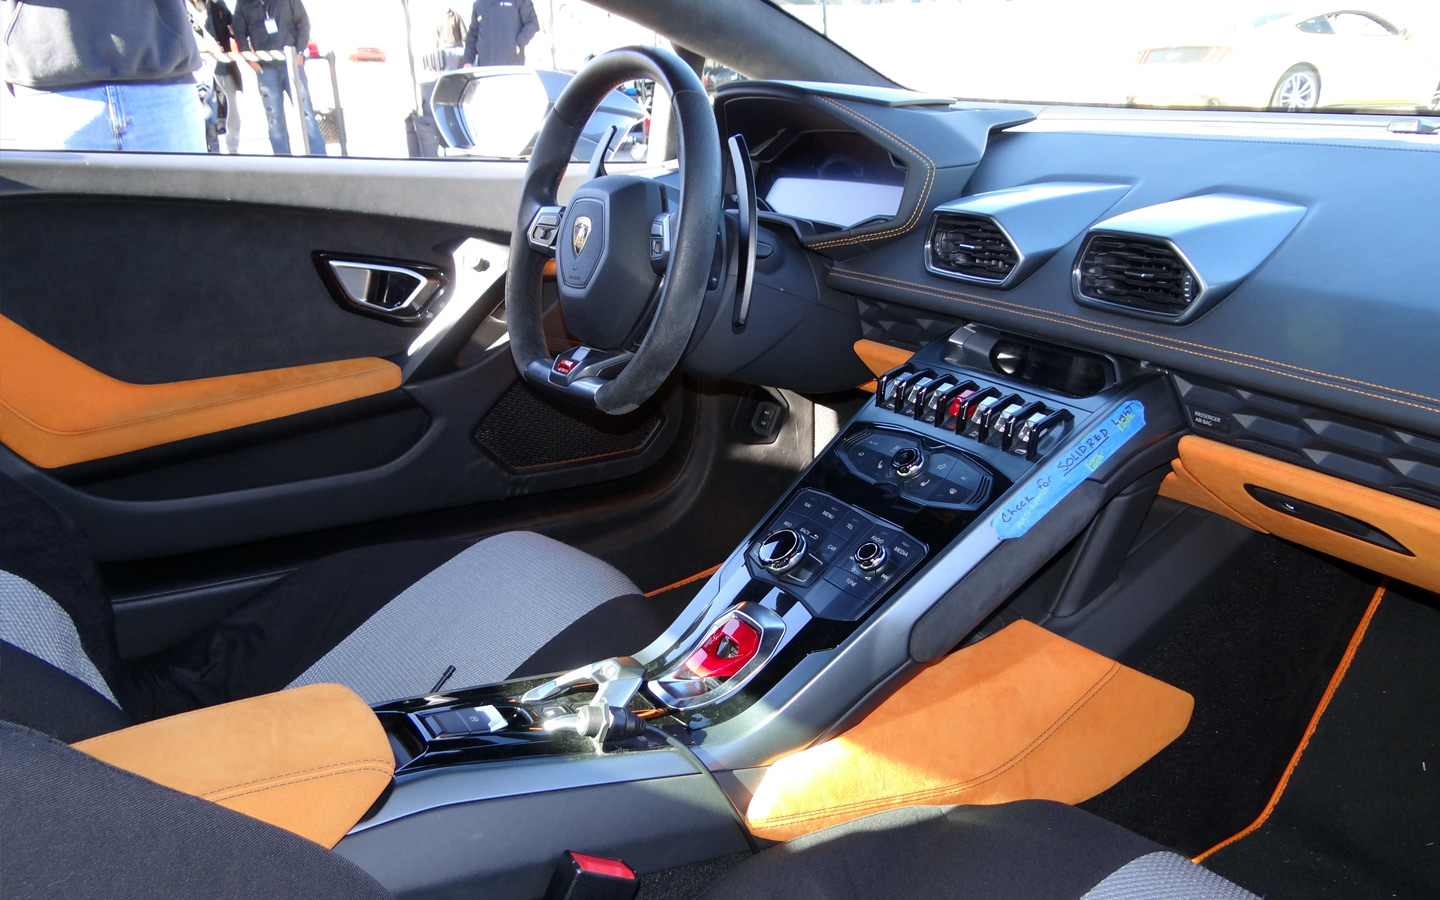 lamborghini huracan lp610 4 driving experience zero to 60 times. Black Bedroom Furniture Sets. Home Design Ideas